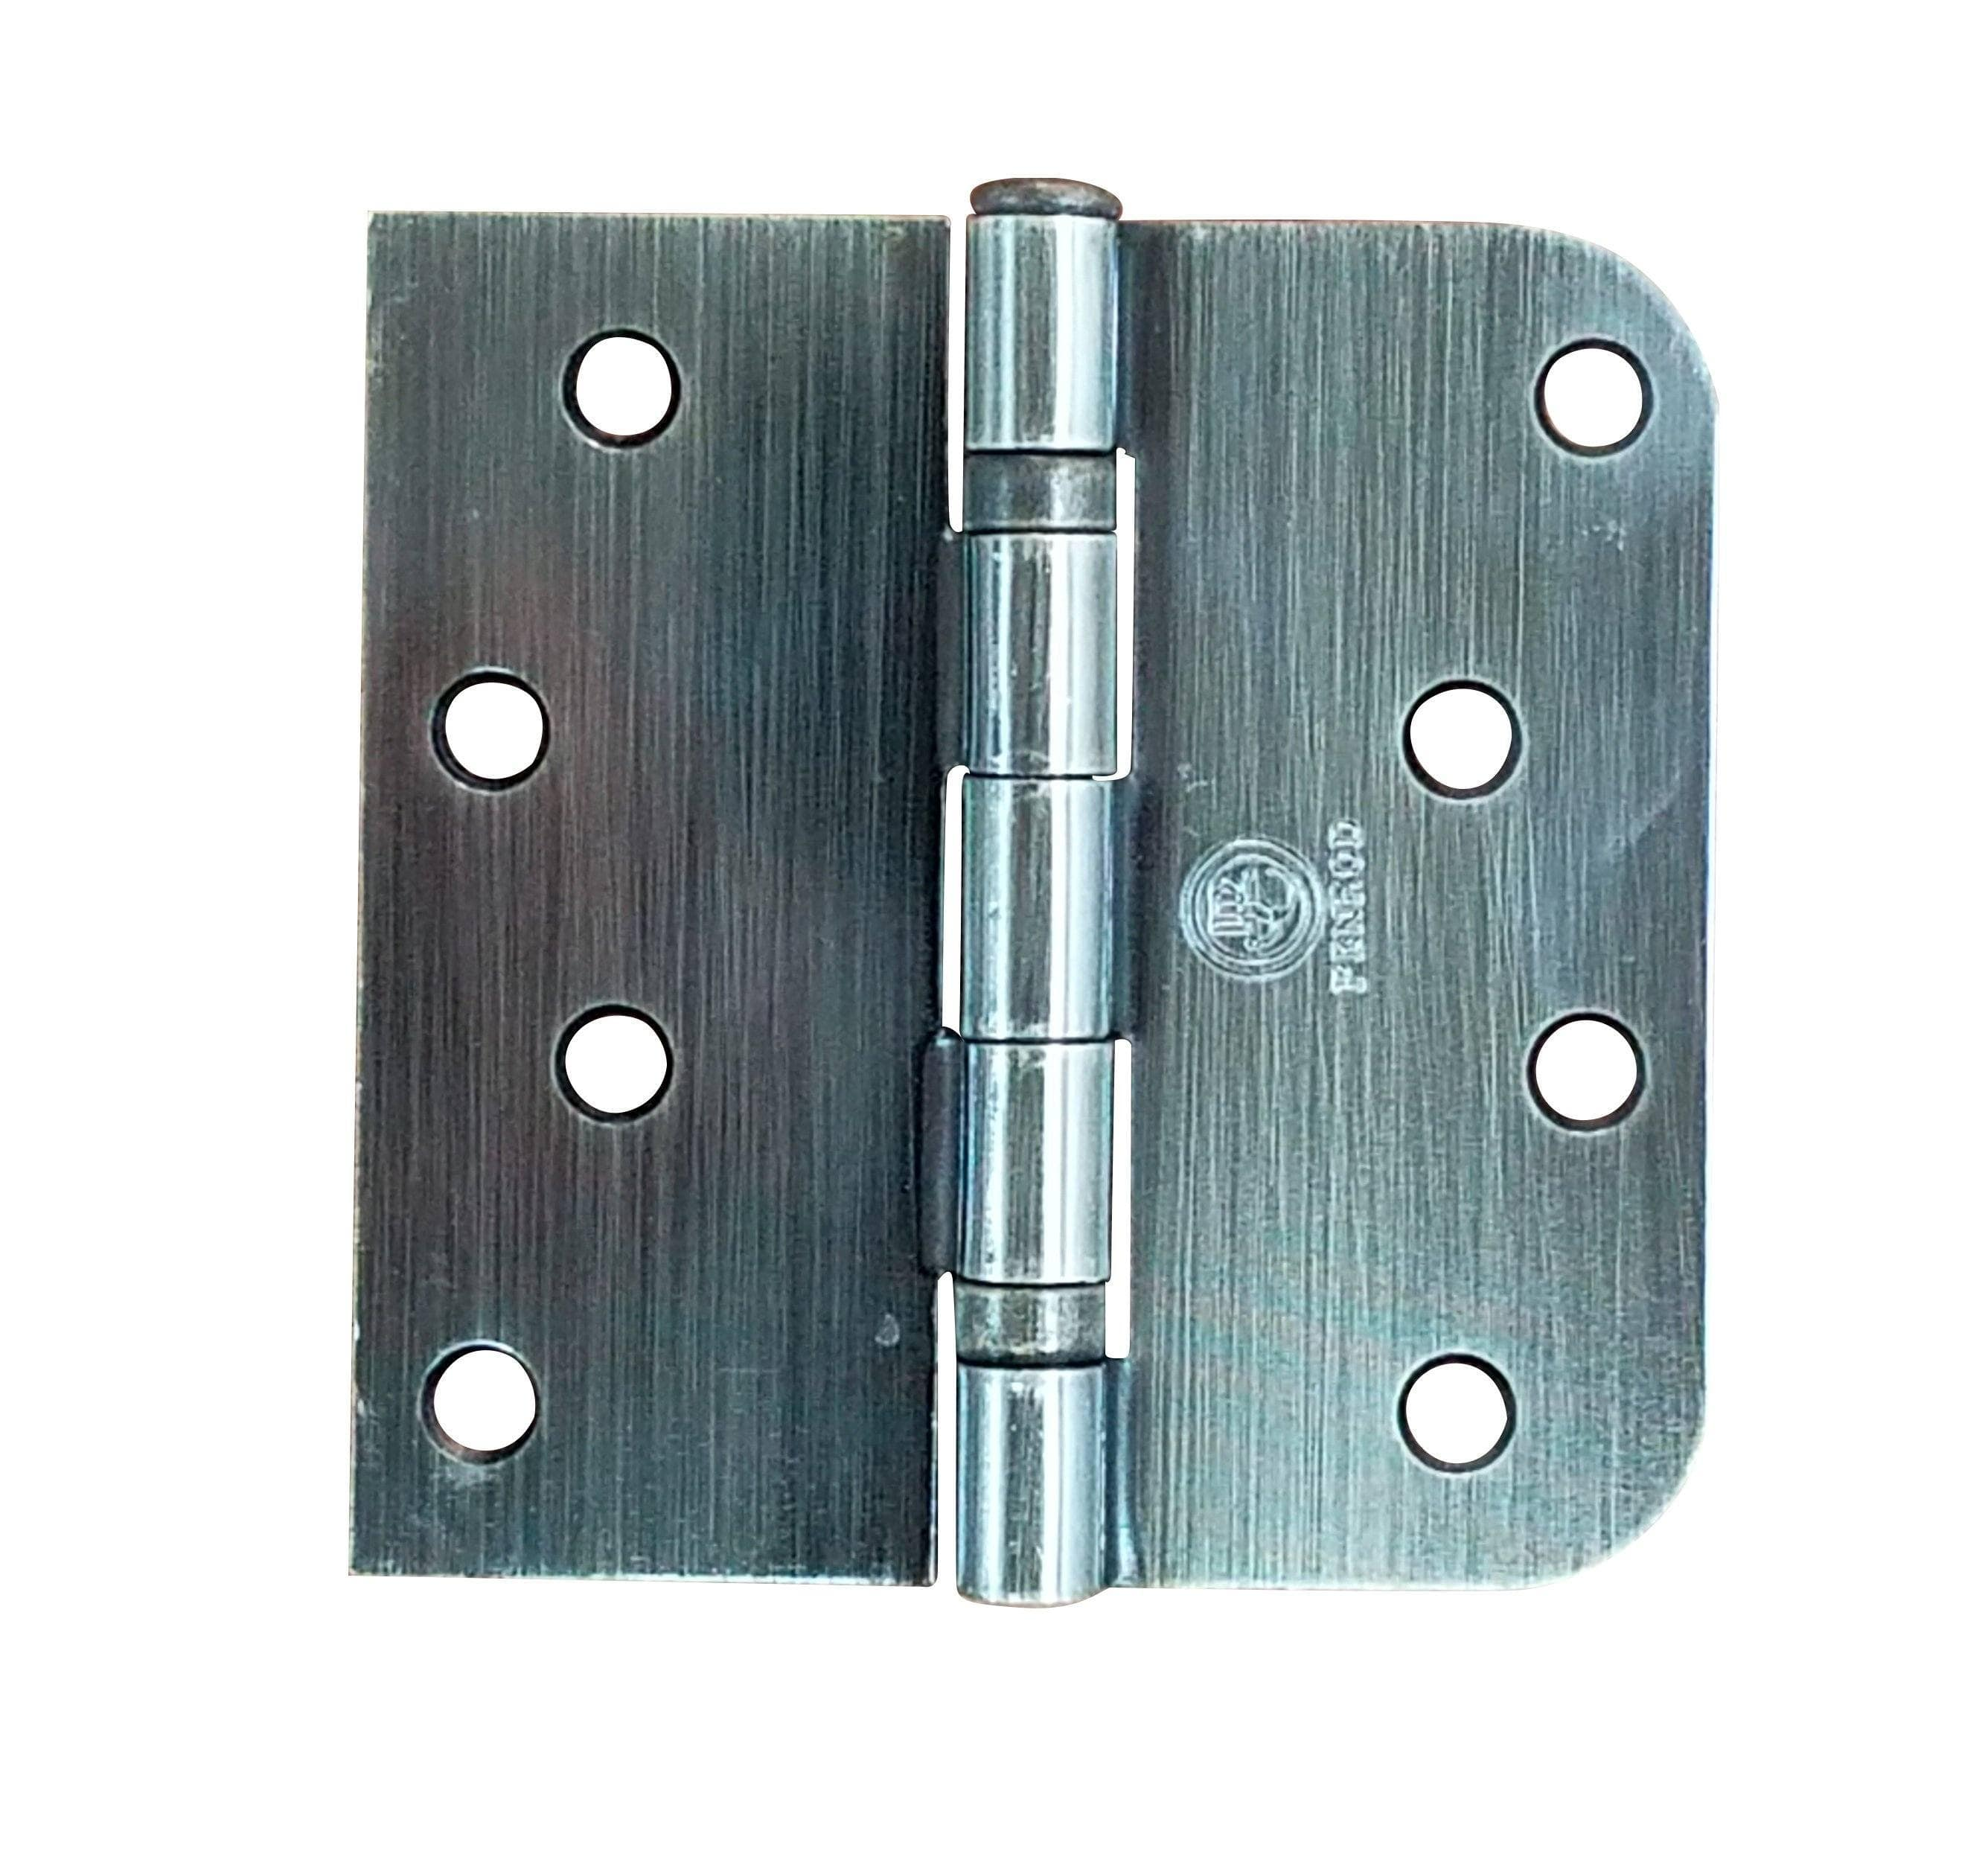 "3.5/"" HD Bright Chrome Ball Bearing Hinge 5//8/"" corner"